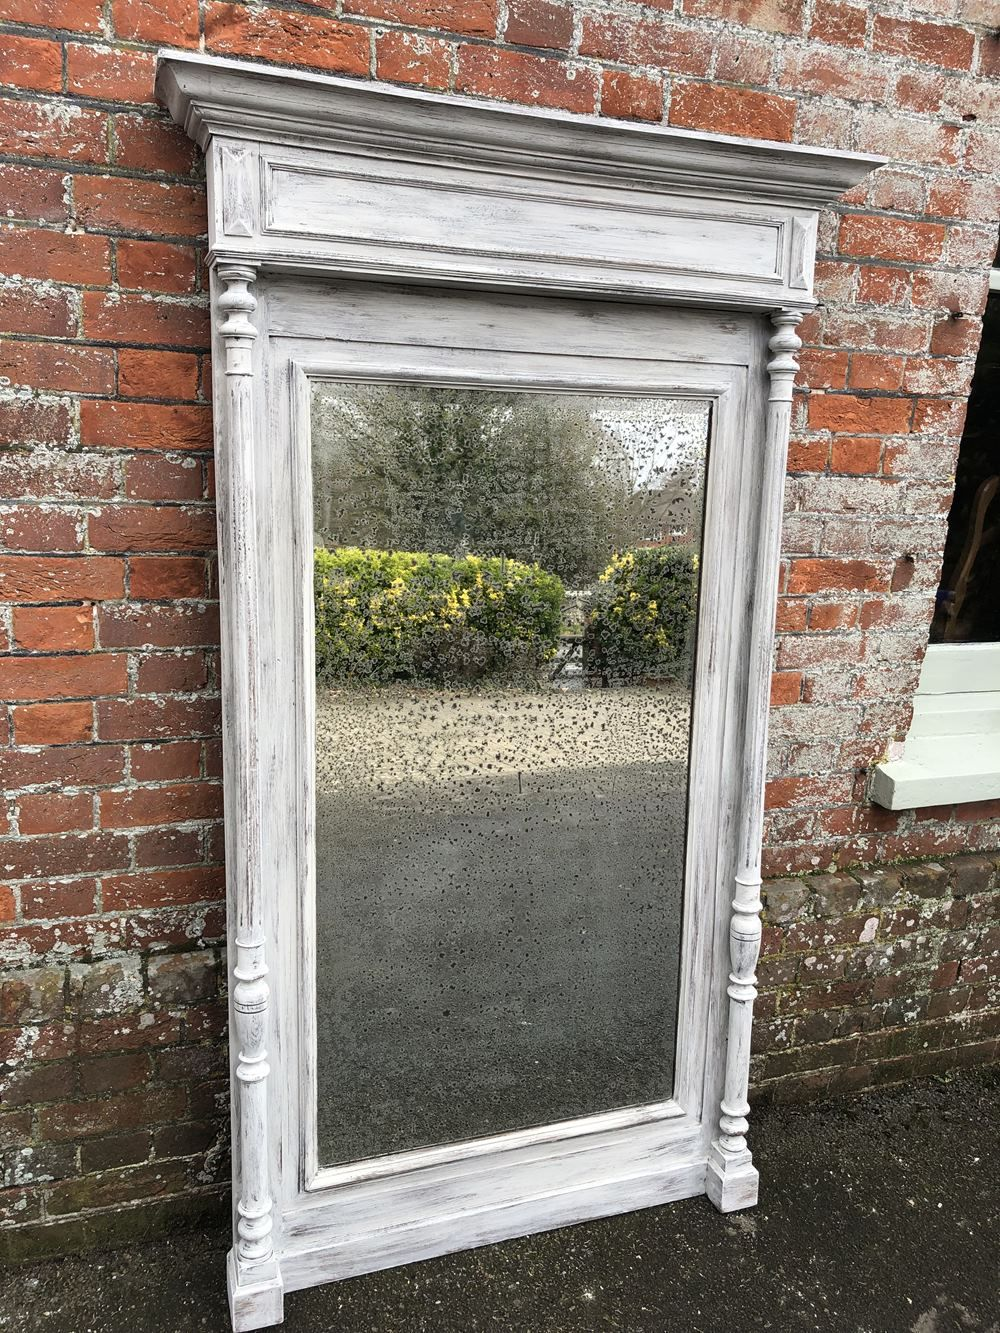 A Stunning Large Antique 19th Century French Carved Wood Painted Mirror Mirror Painting French Antiques Floor Standing Mirror